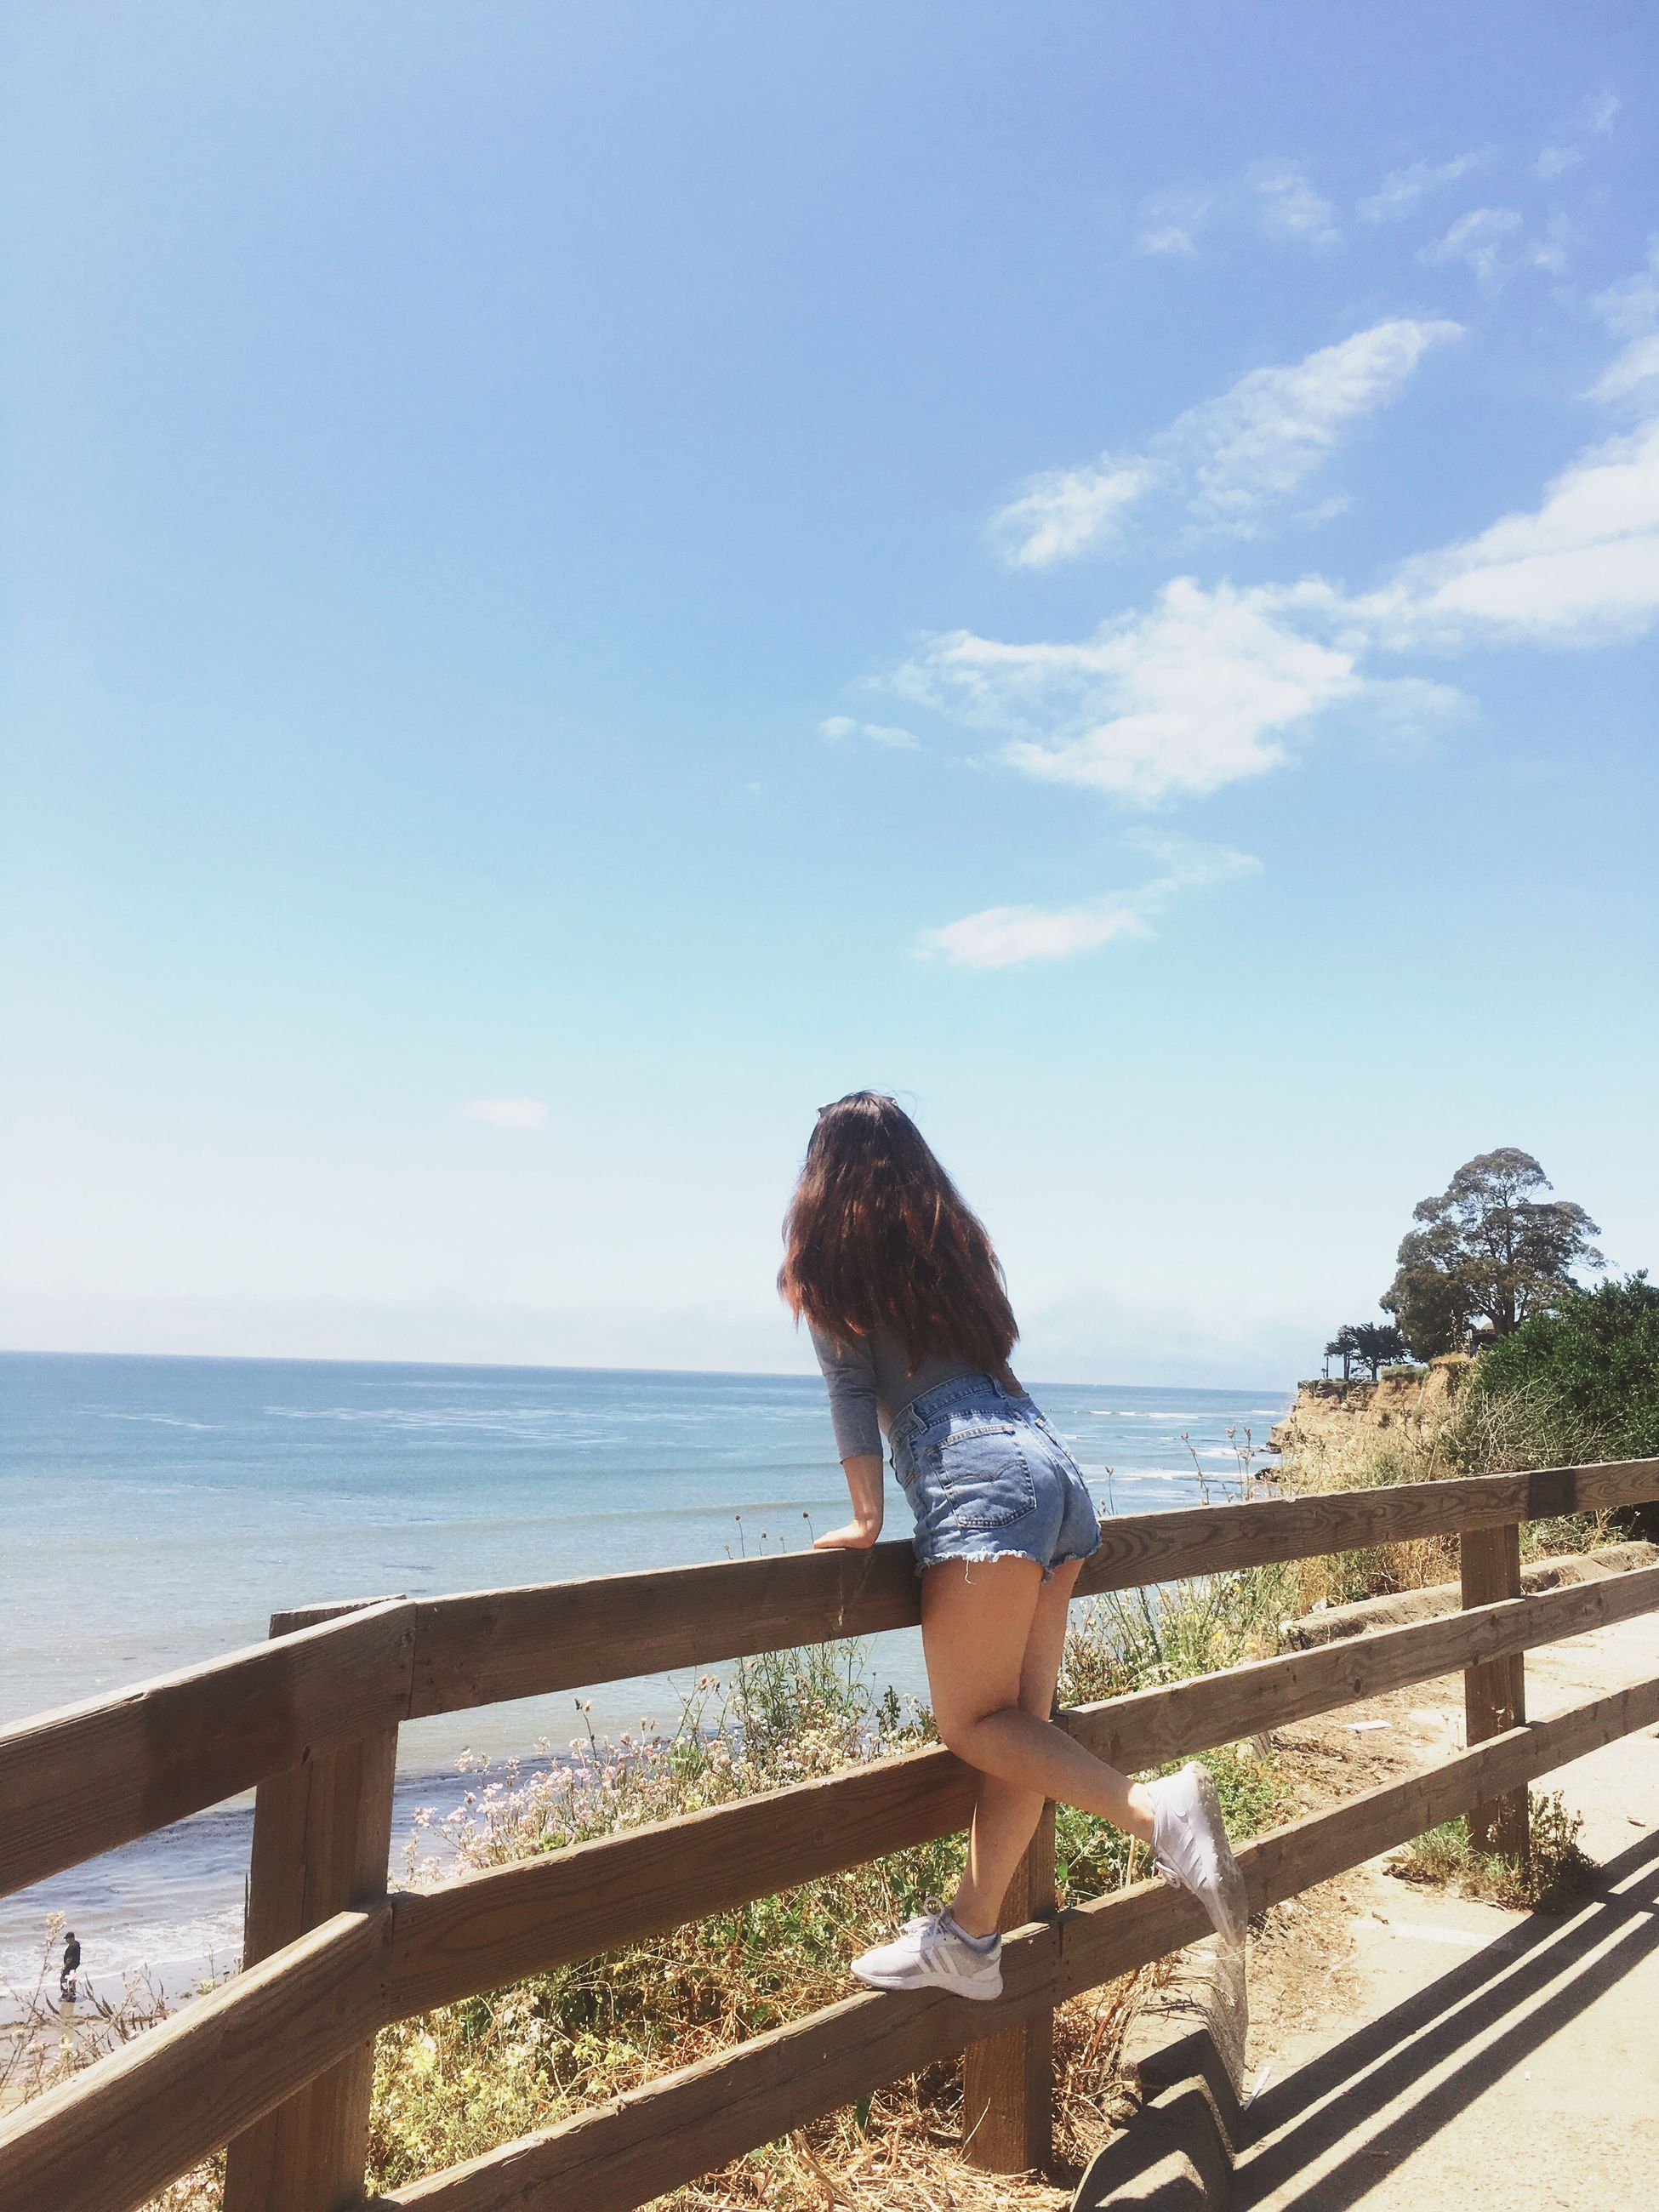 railing, sea, water, one person, real people, horizon over water, sky, nature, scenics, day, leisure activity, beauty in nature, lifestyles, outdoors, young adult, young women, full length, standing, people